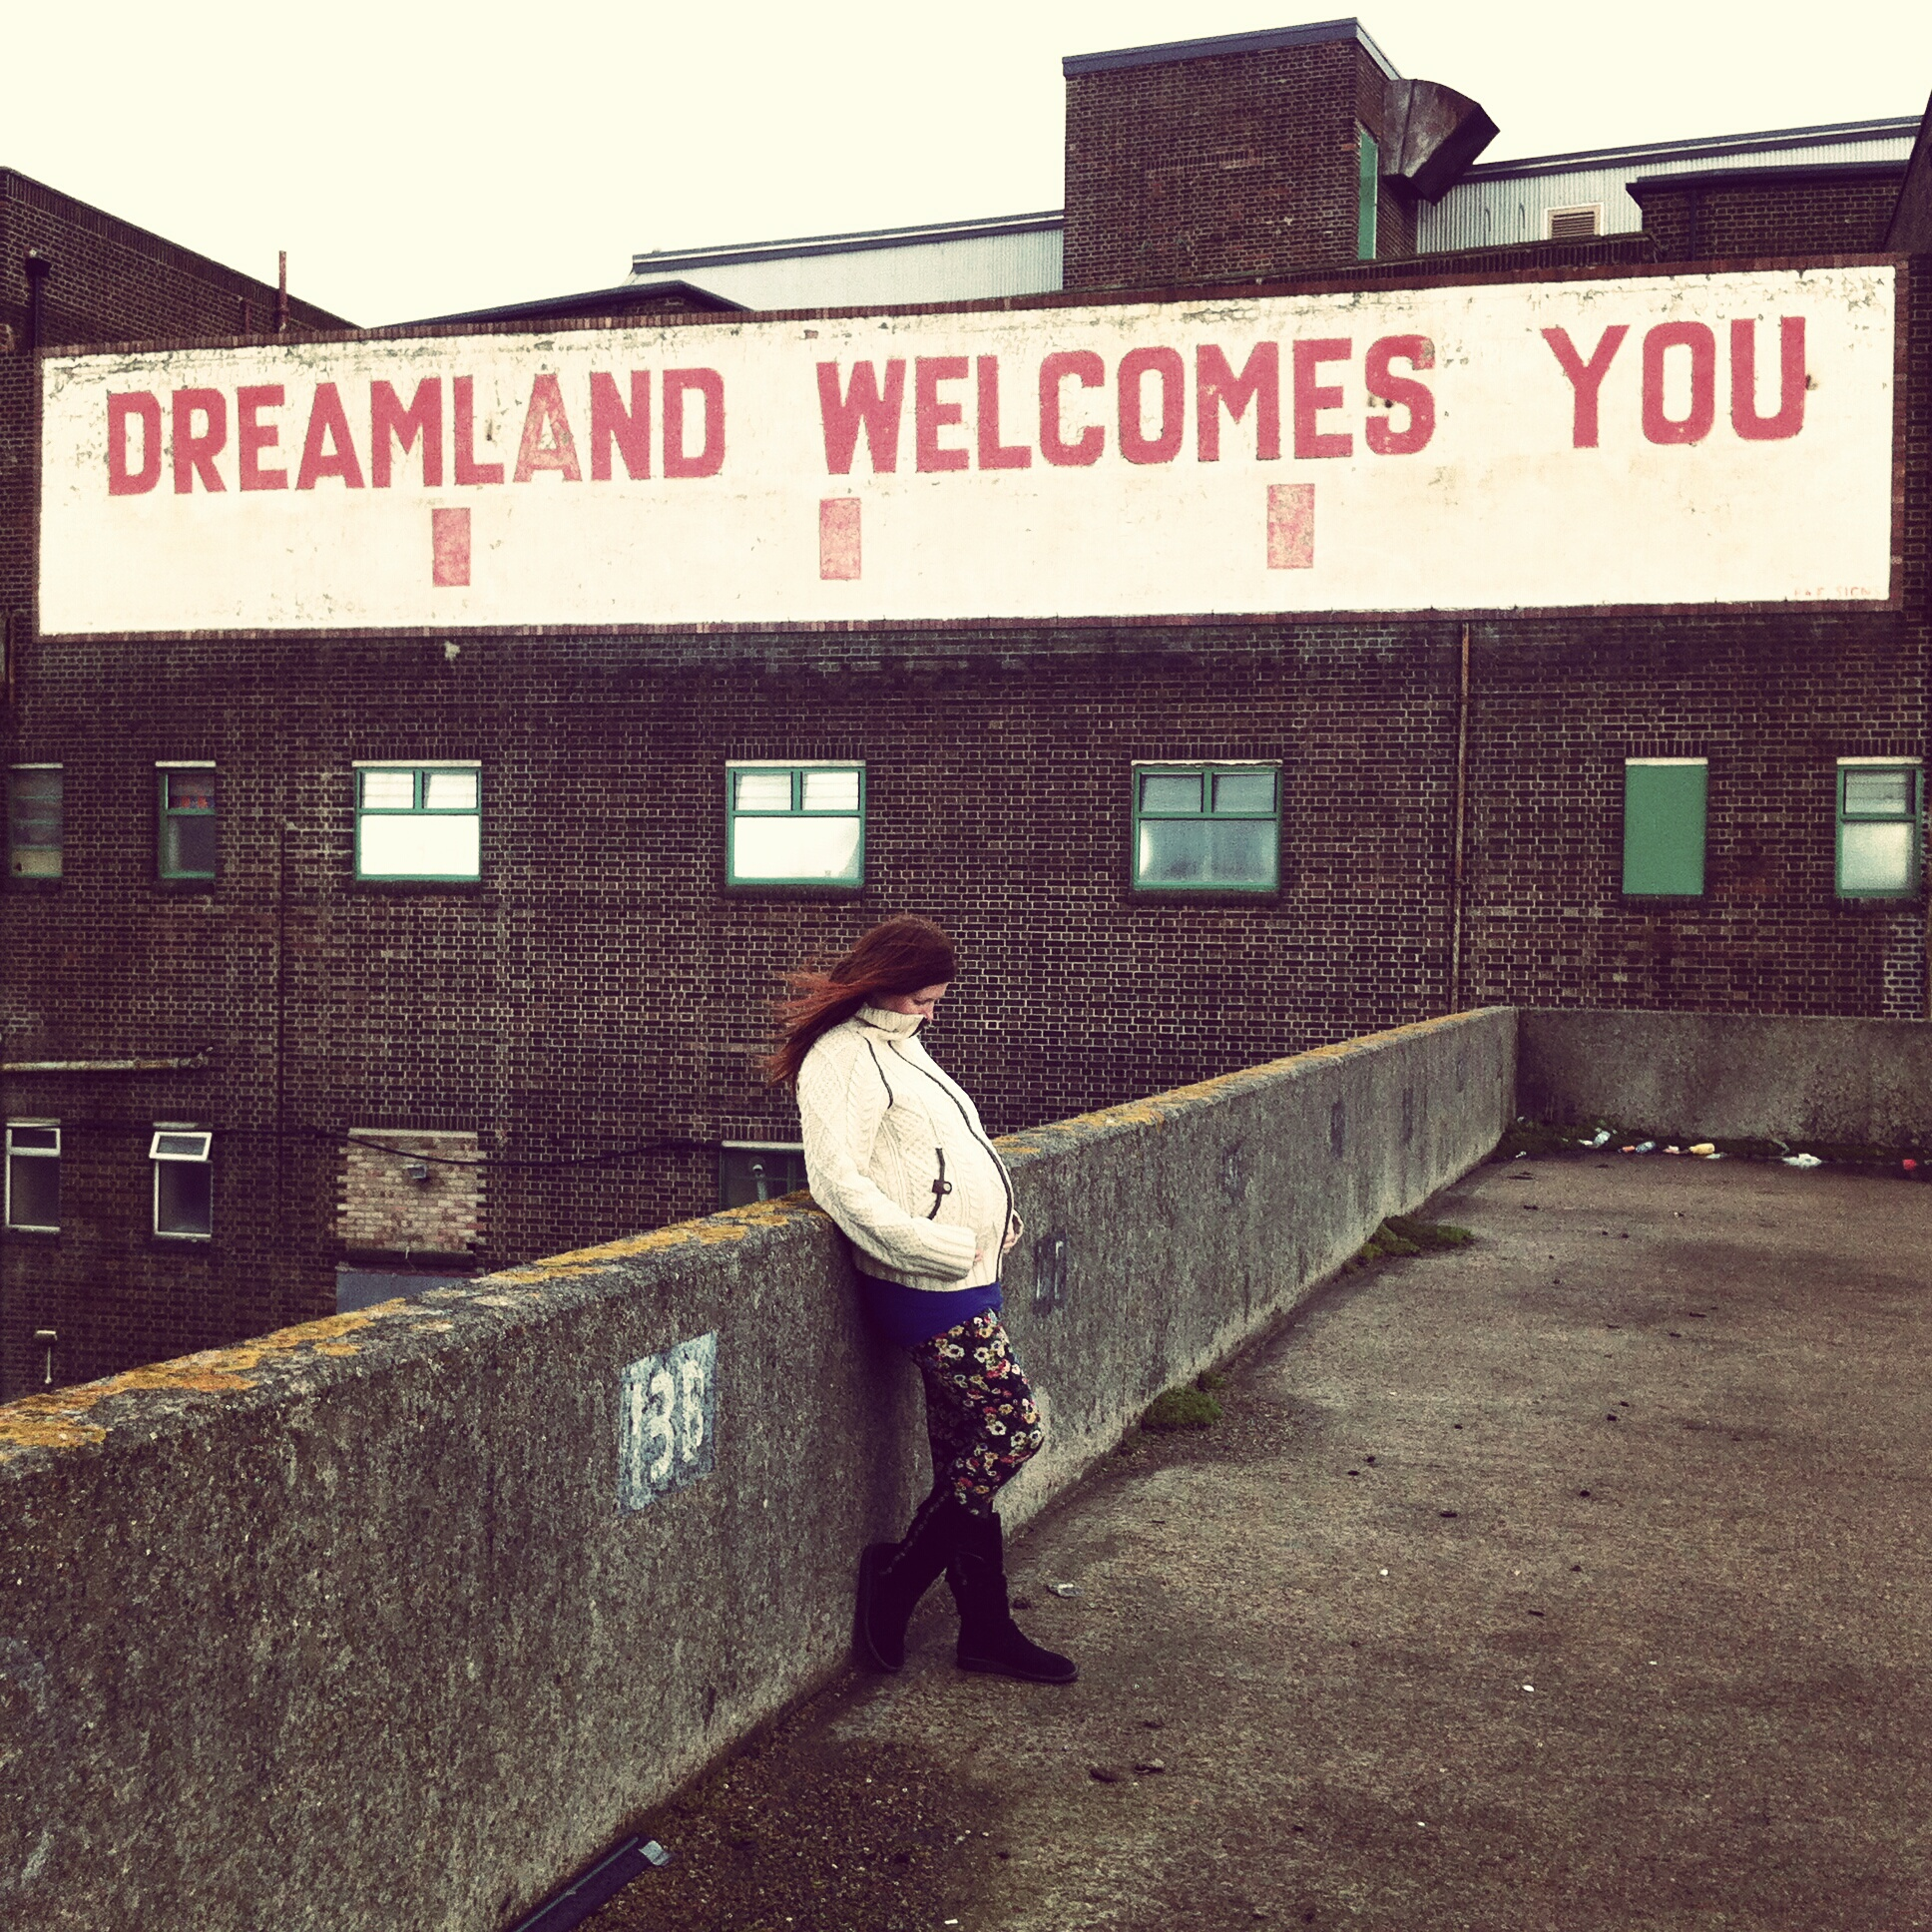 Welcome to dreamland baby